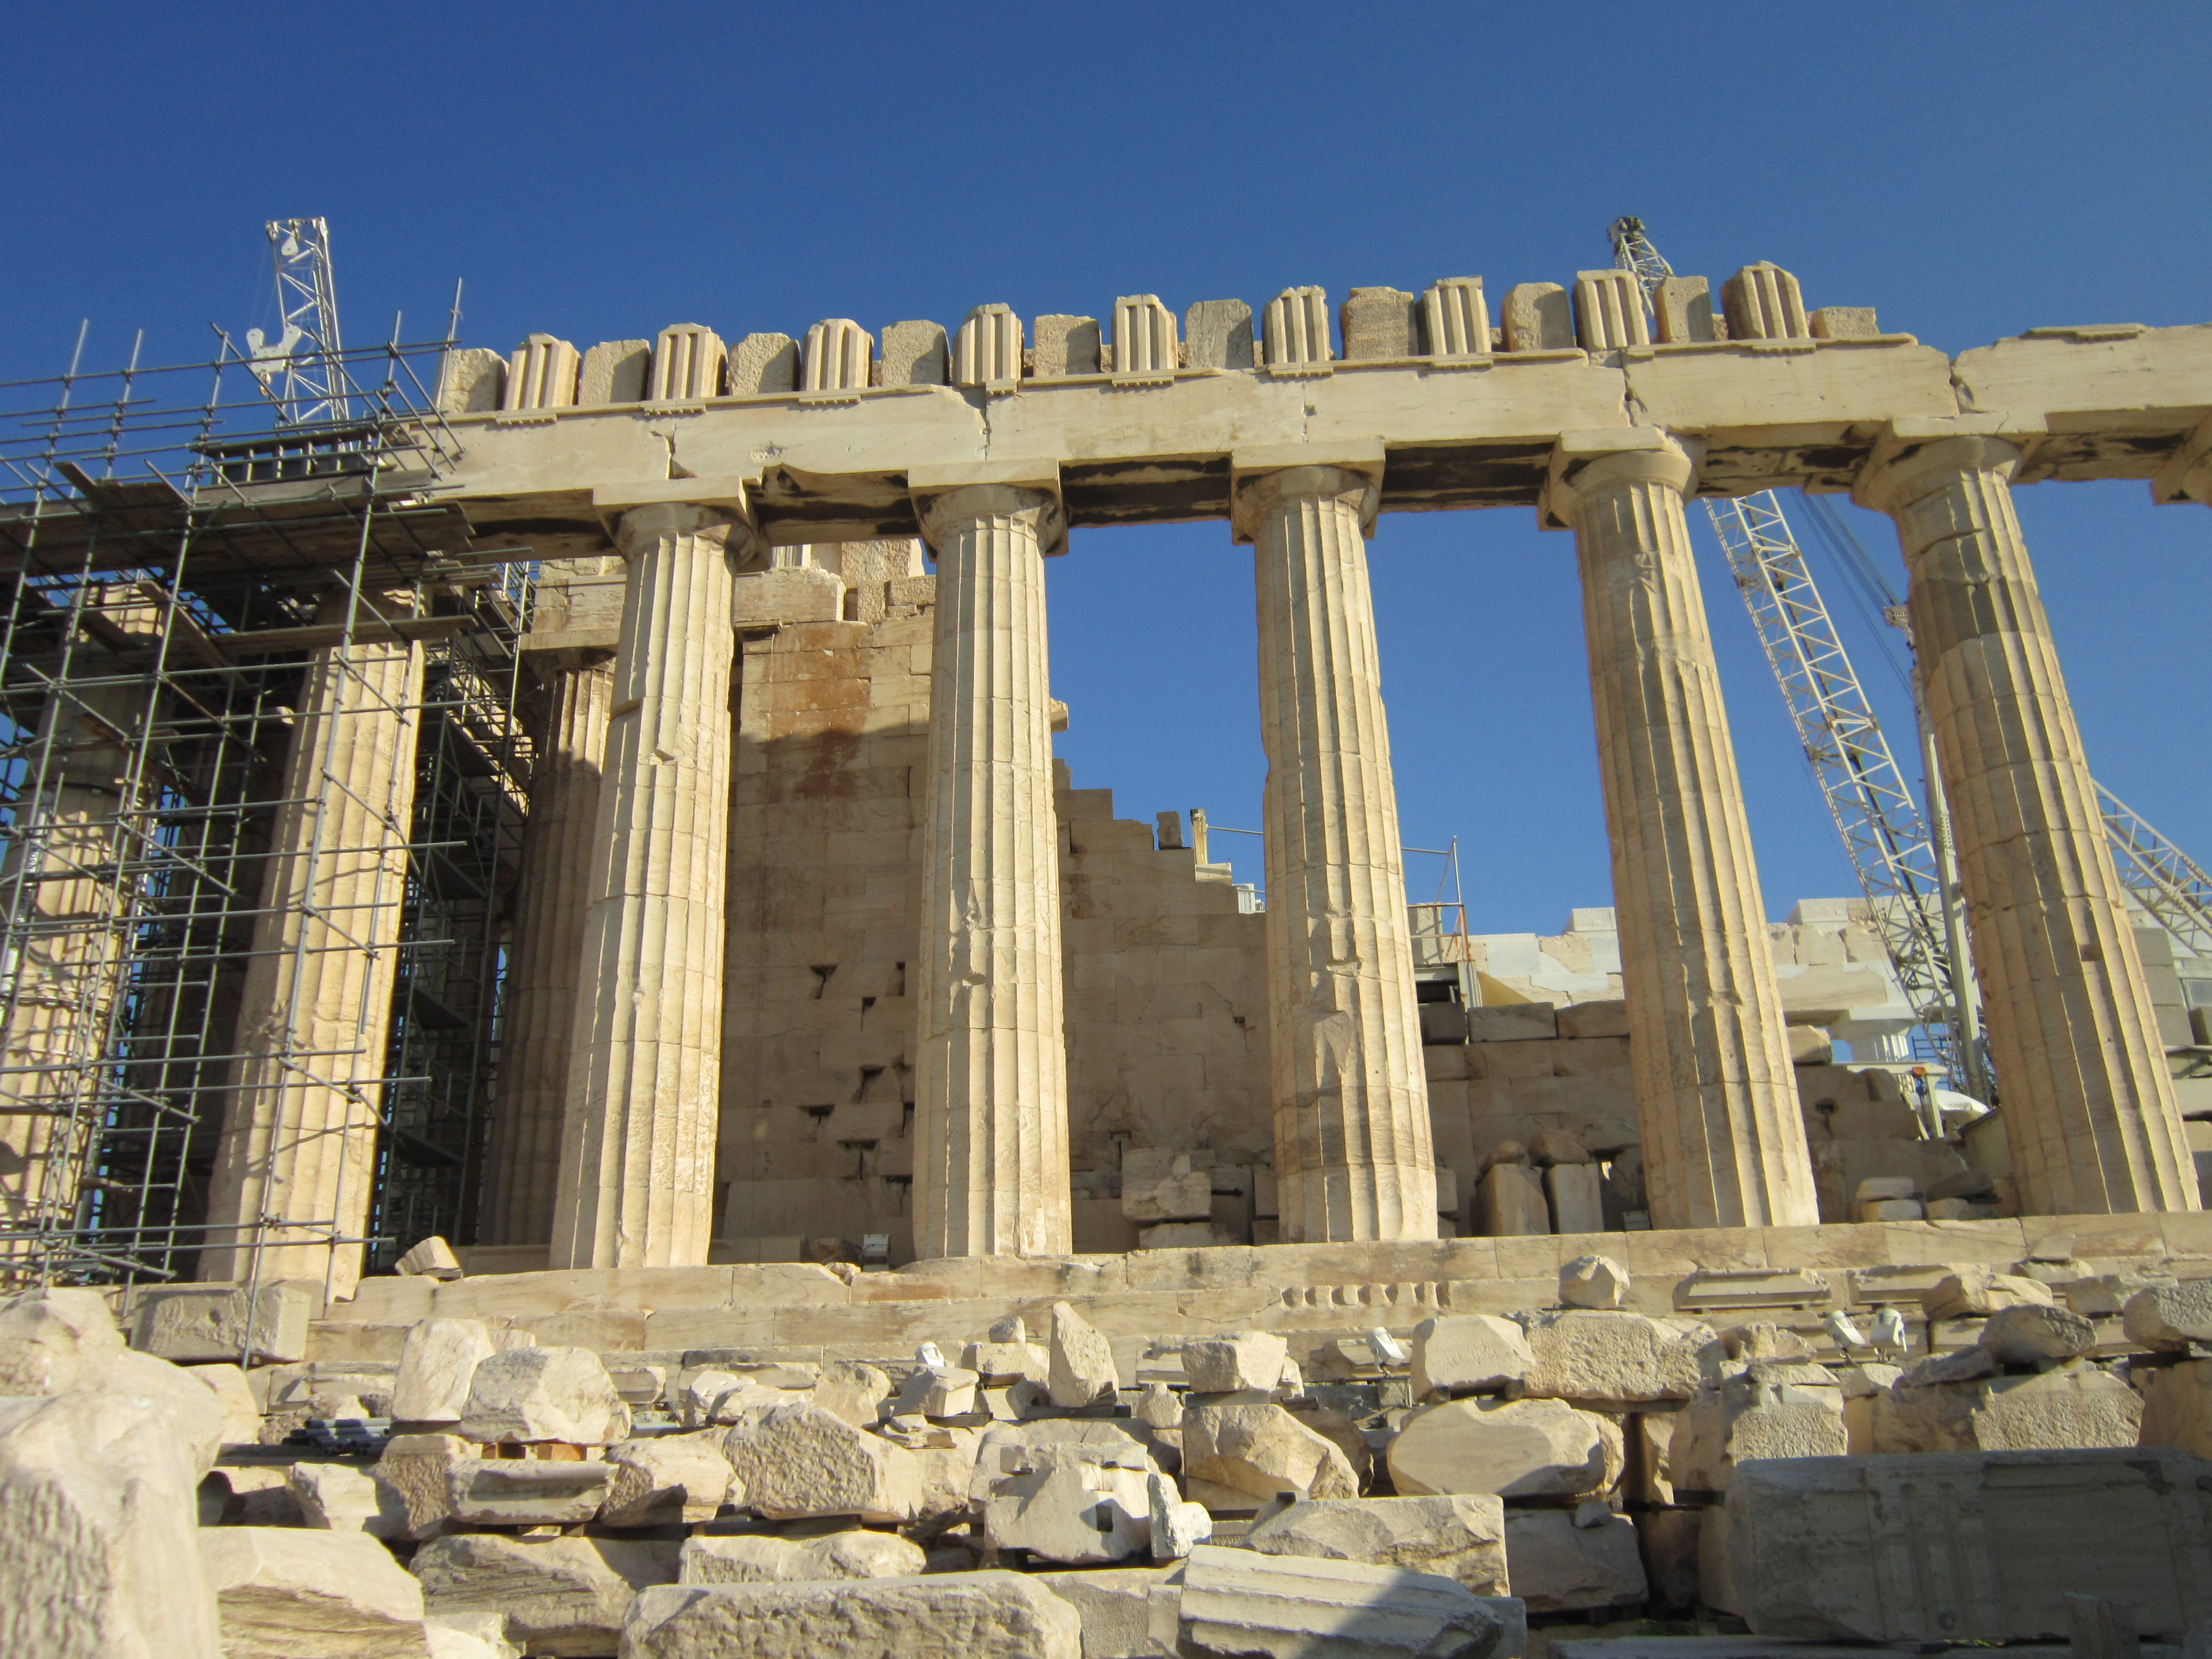 My own first solo travel experience was to Athens!